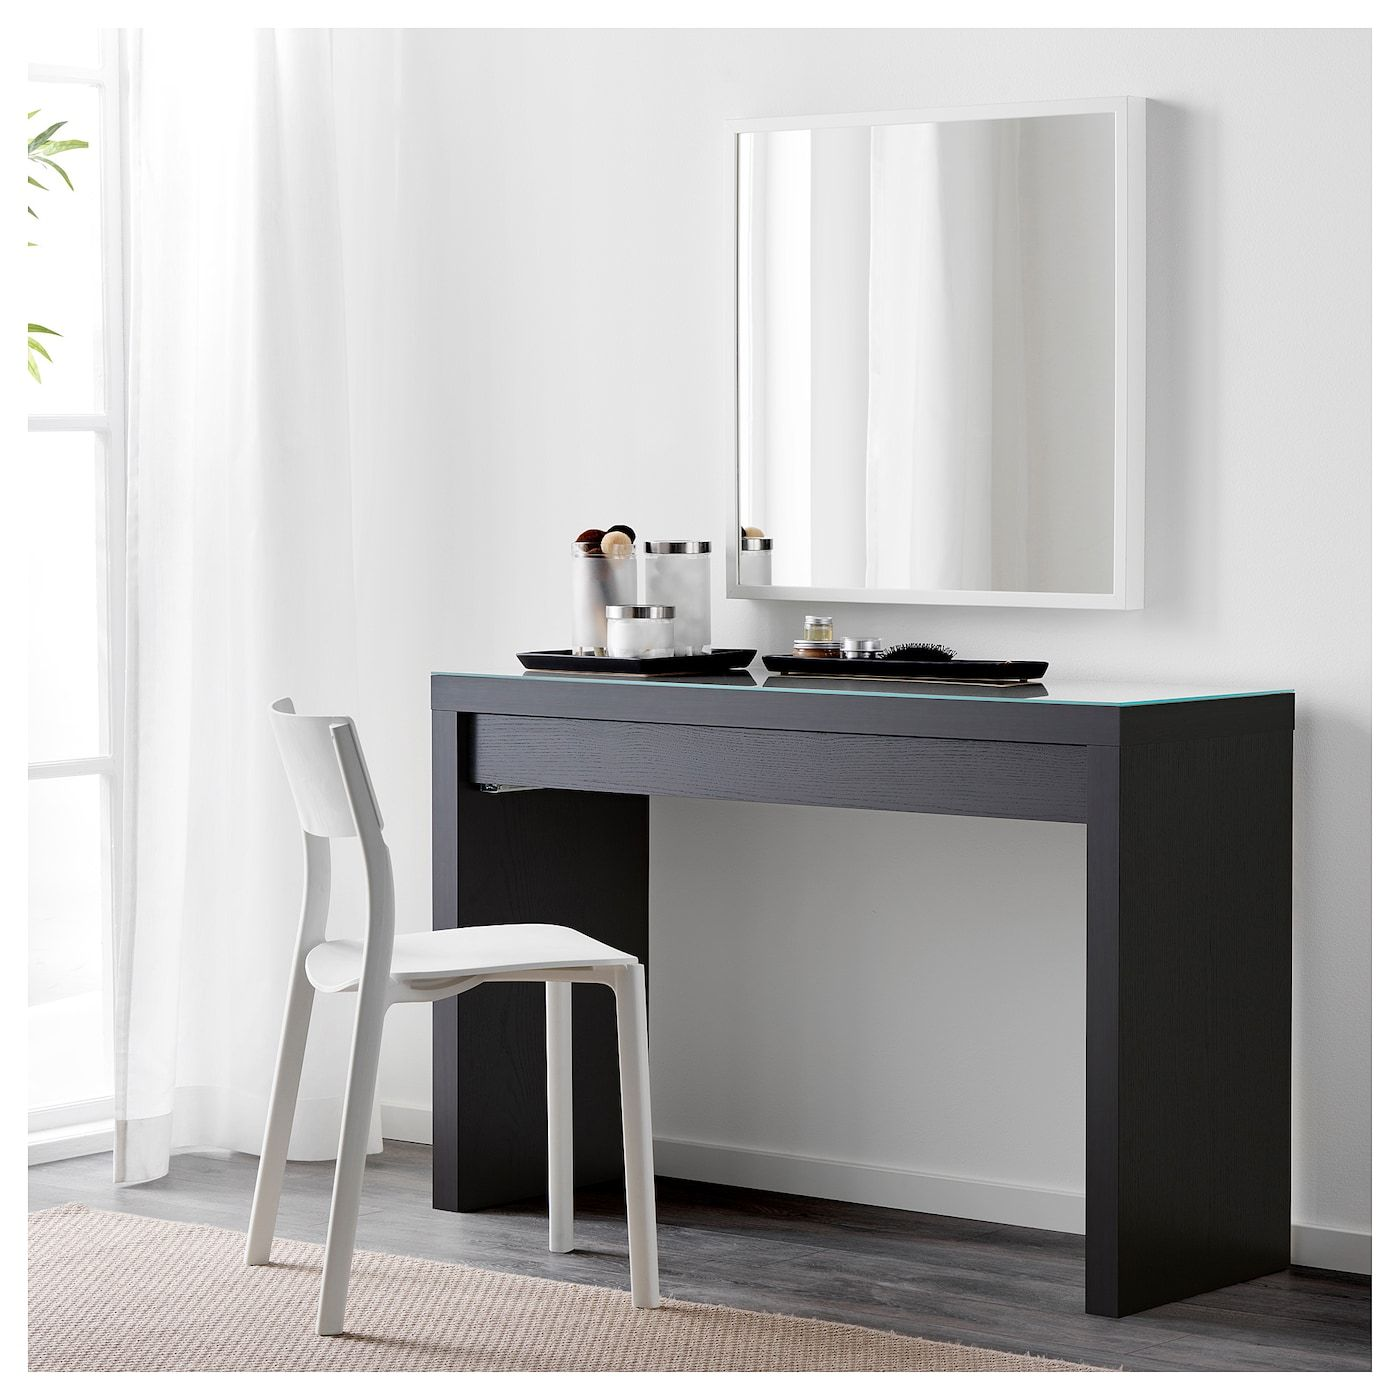 Malm Dressing Table Black Brown Ikea Kaptafel Kaptafel Ideeen Tafel Ikea